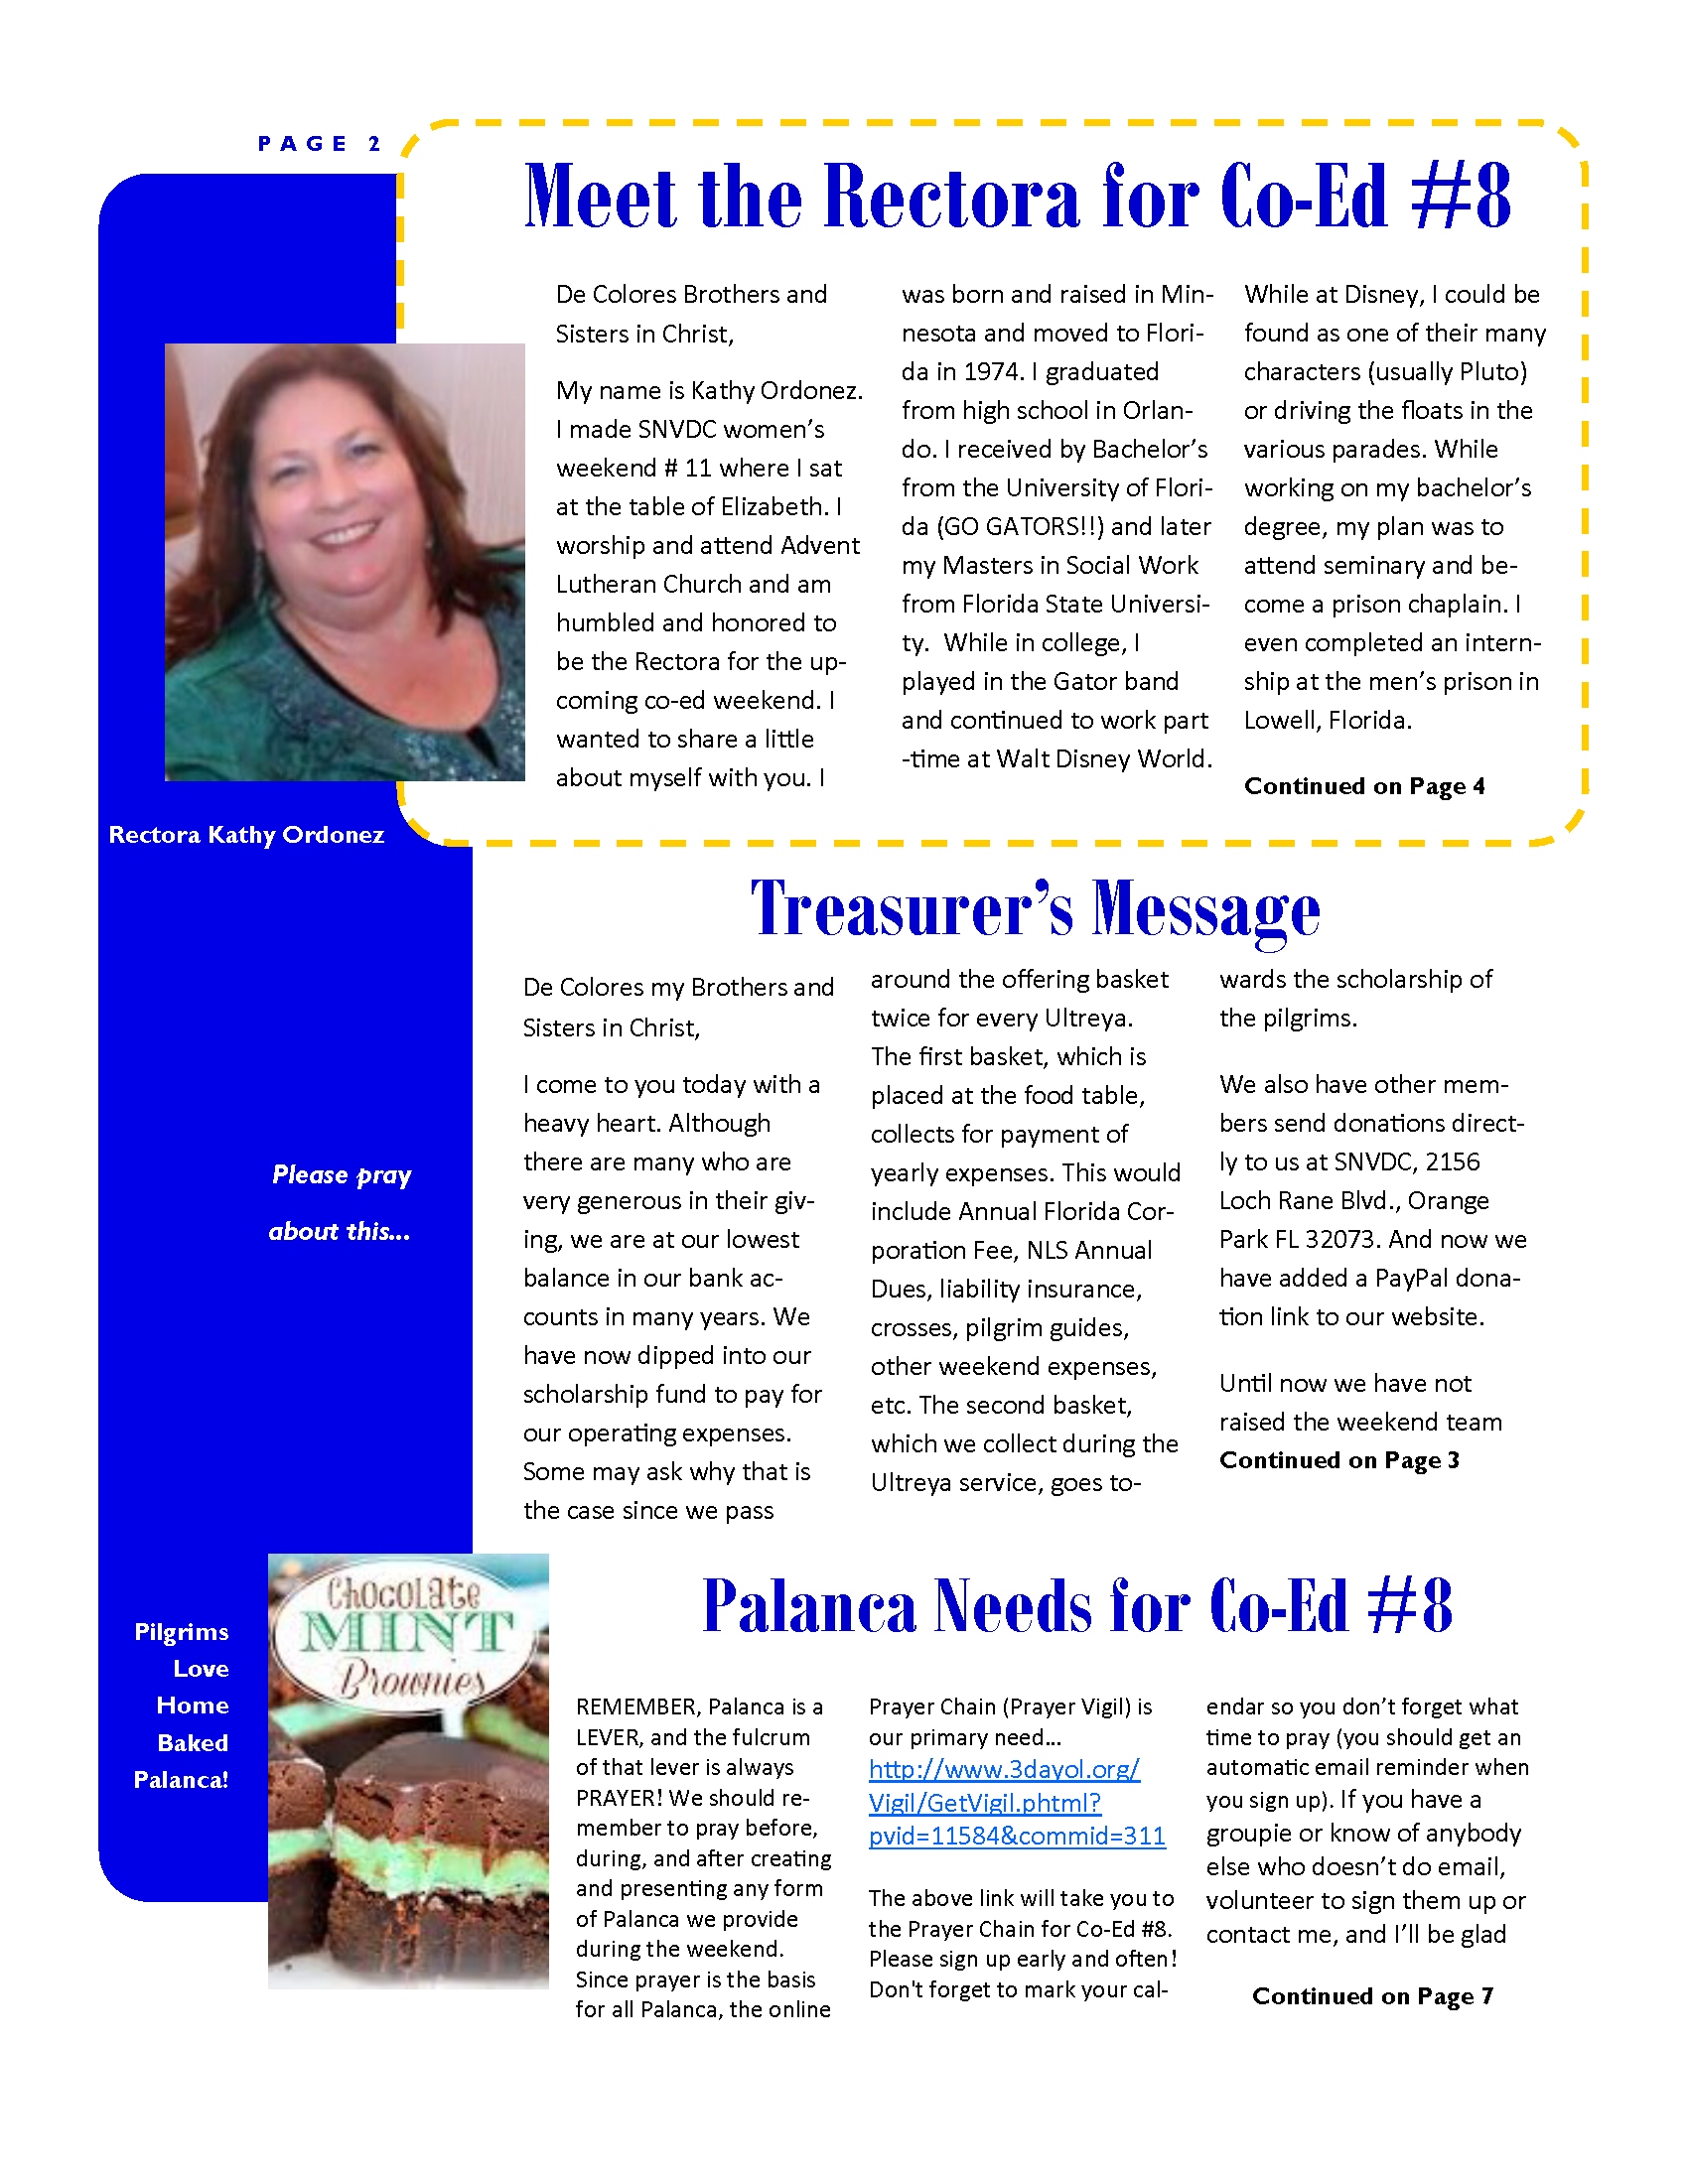 SNVDC Newsletter March 2016_Page_02